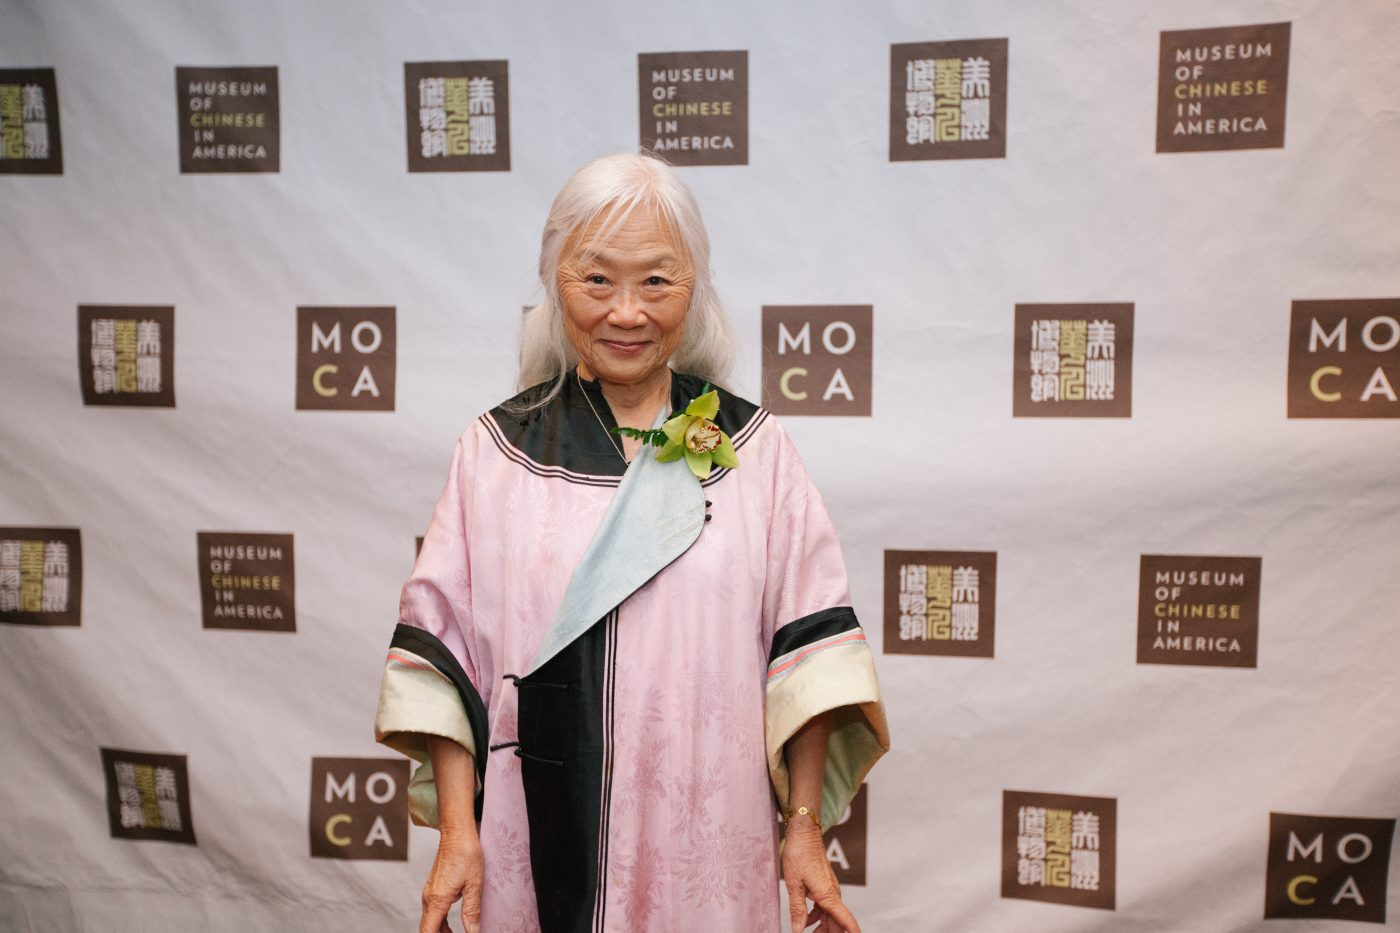 15 October 2019 Posted. Maxine Hong Kingston at MOCA's 2018 Gala, Museum of Chinese in America (MOCA) Institutional Archives. 汤婷婷在2018年MOCA年度传承大奖颁奖晚宴上,美国华人博物馆(MOCA)机构档案